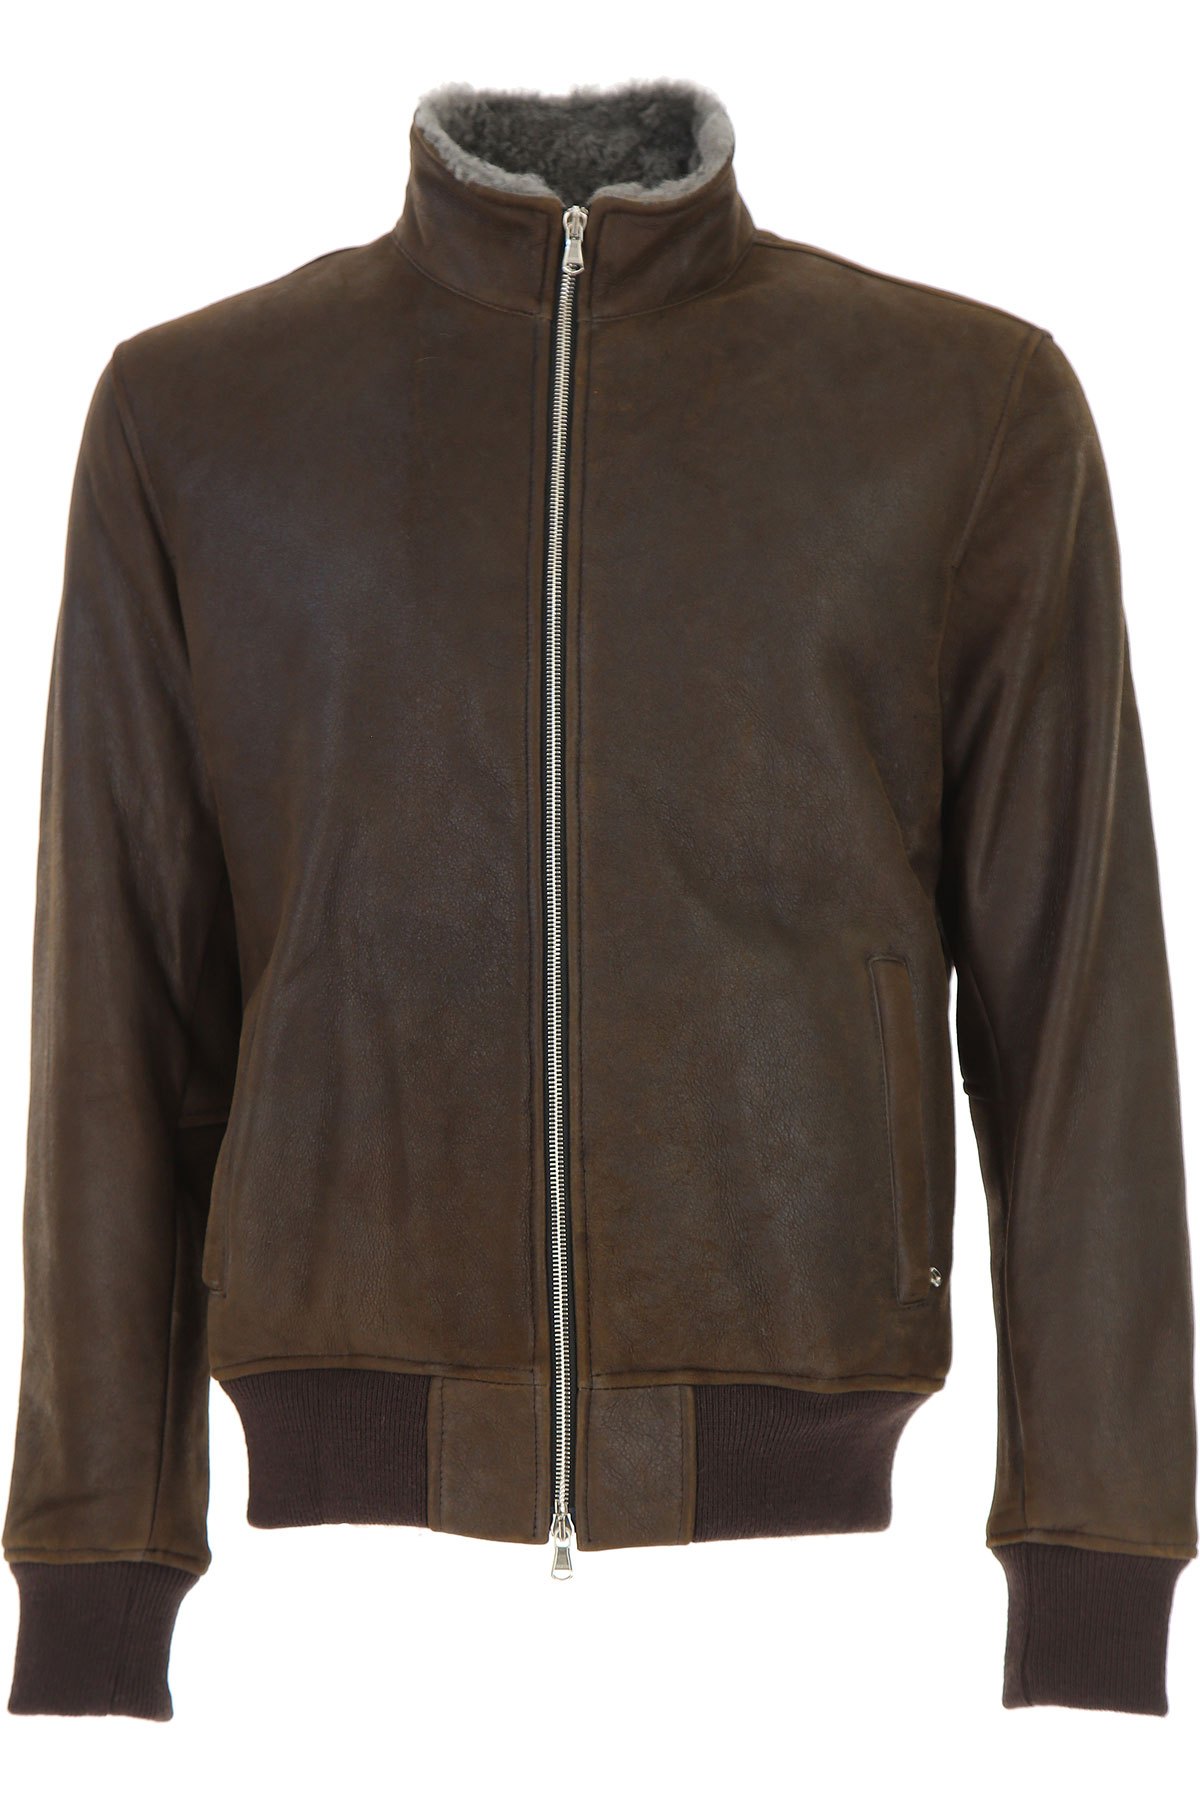 Image of Barba Leather Jacket for Men, Brown, Leather, 2017, L M XL